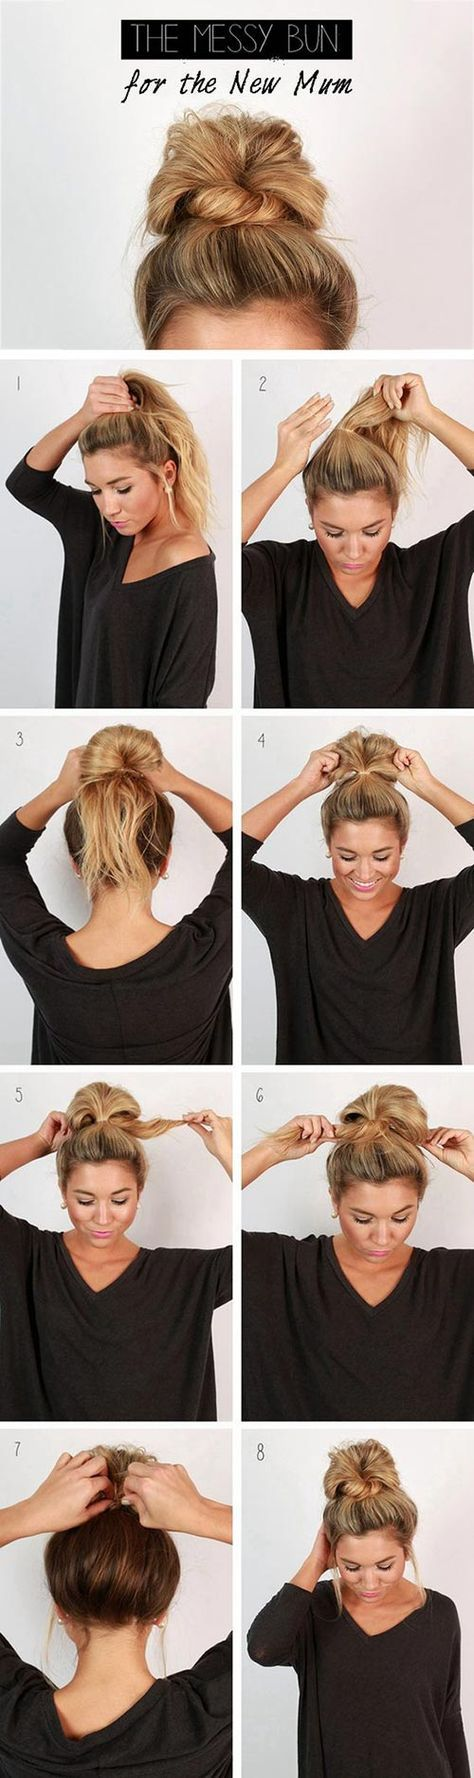 Top 10 Messy Updo Tutorials For Different Hair Lengths Hair Styles Long Hair Styles Easy Updo Hairstyles